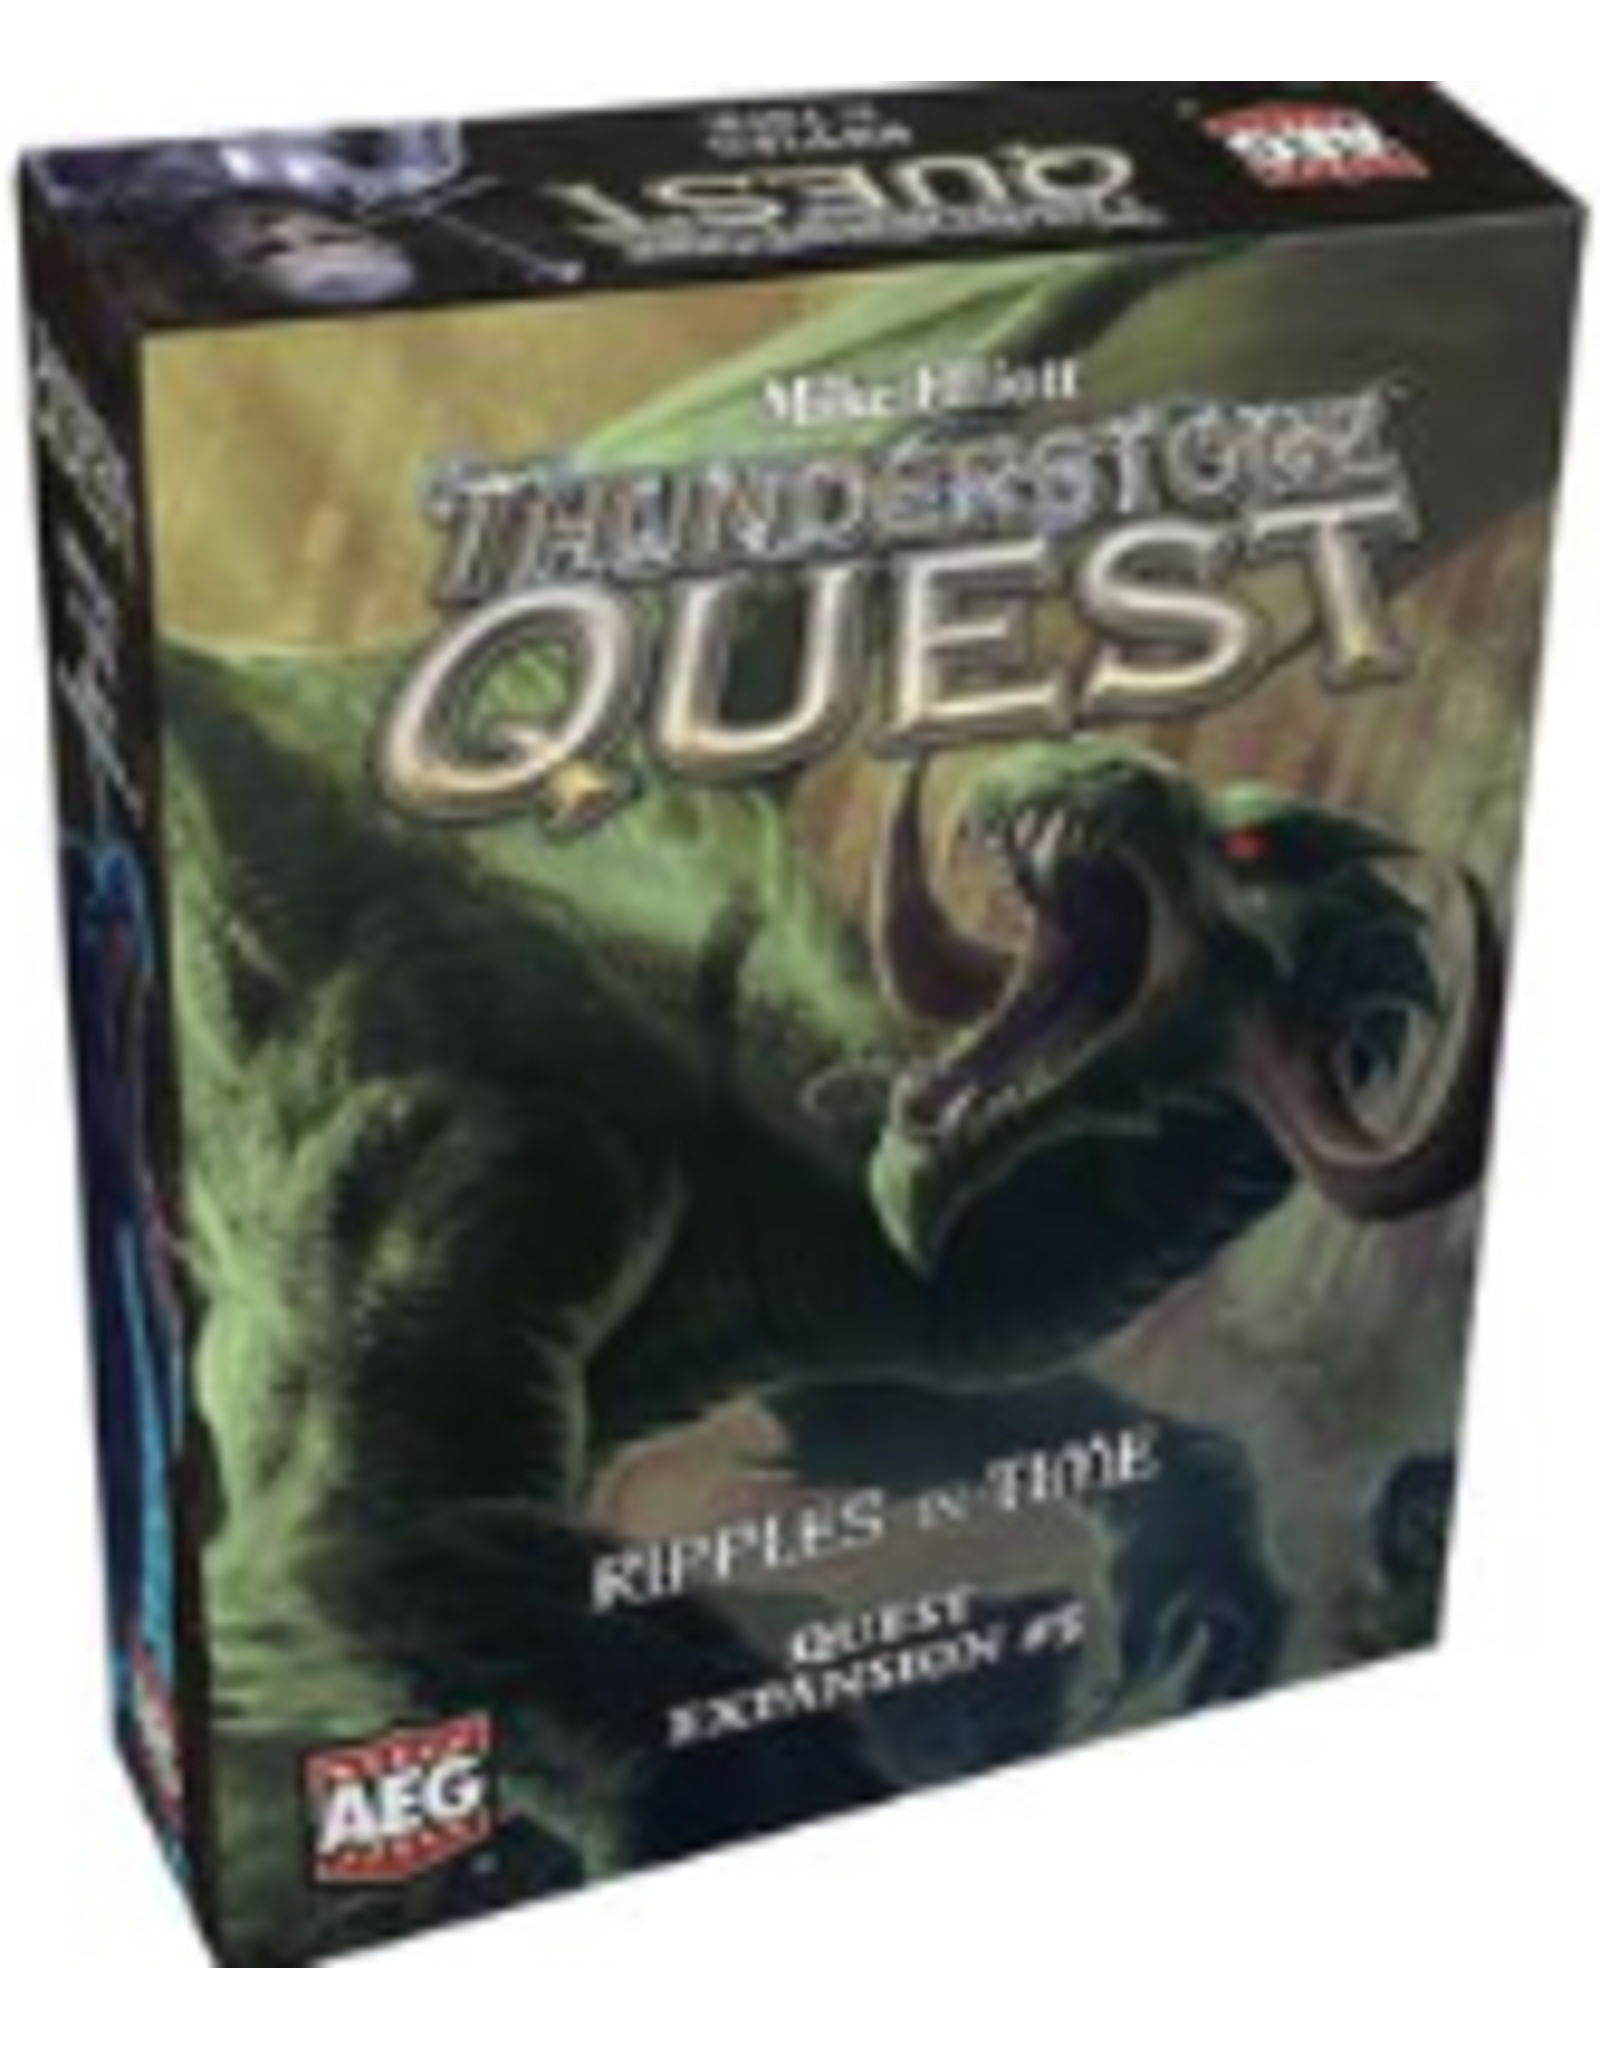 AEG Thunderstone Quest: Ripples in Time